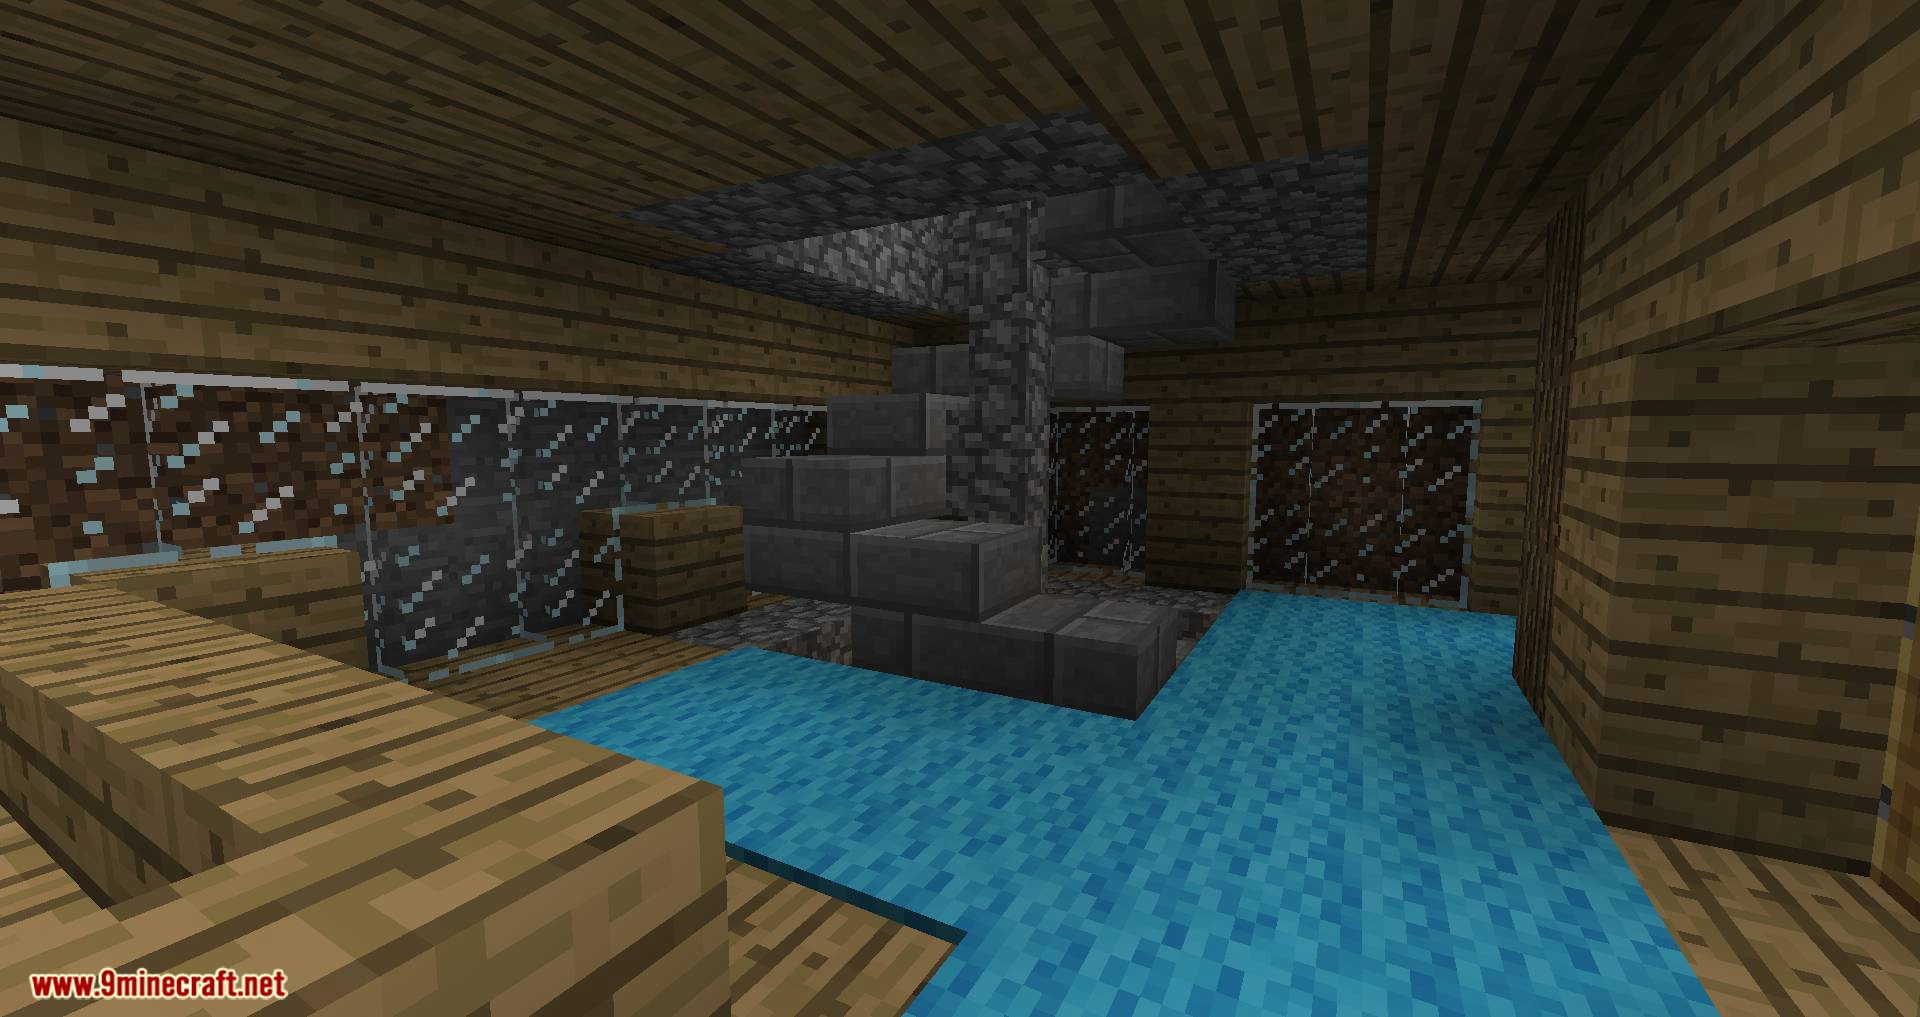 Wesley_s Roguelike Dungeons mod for minecraft 03